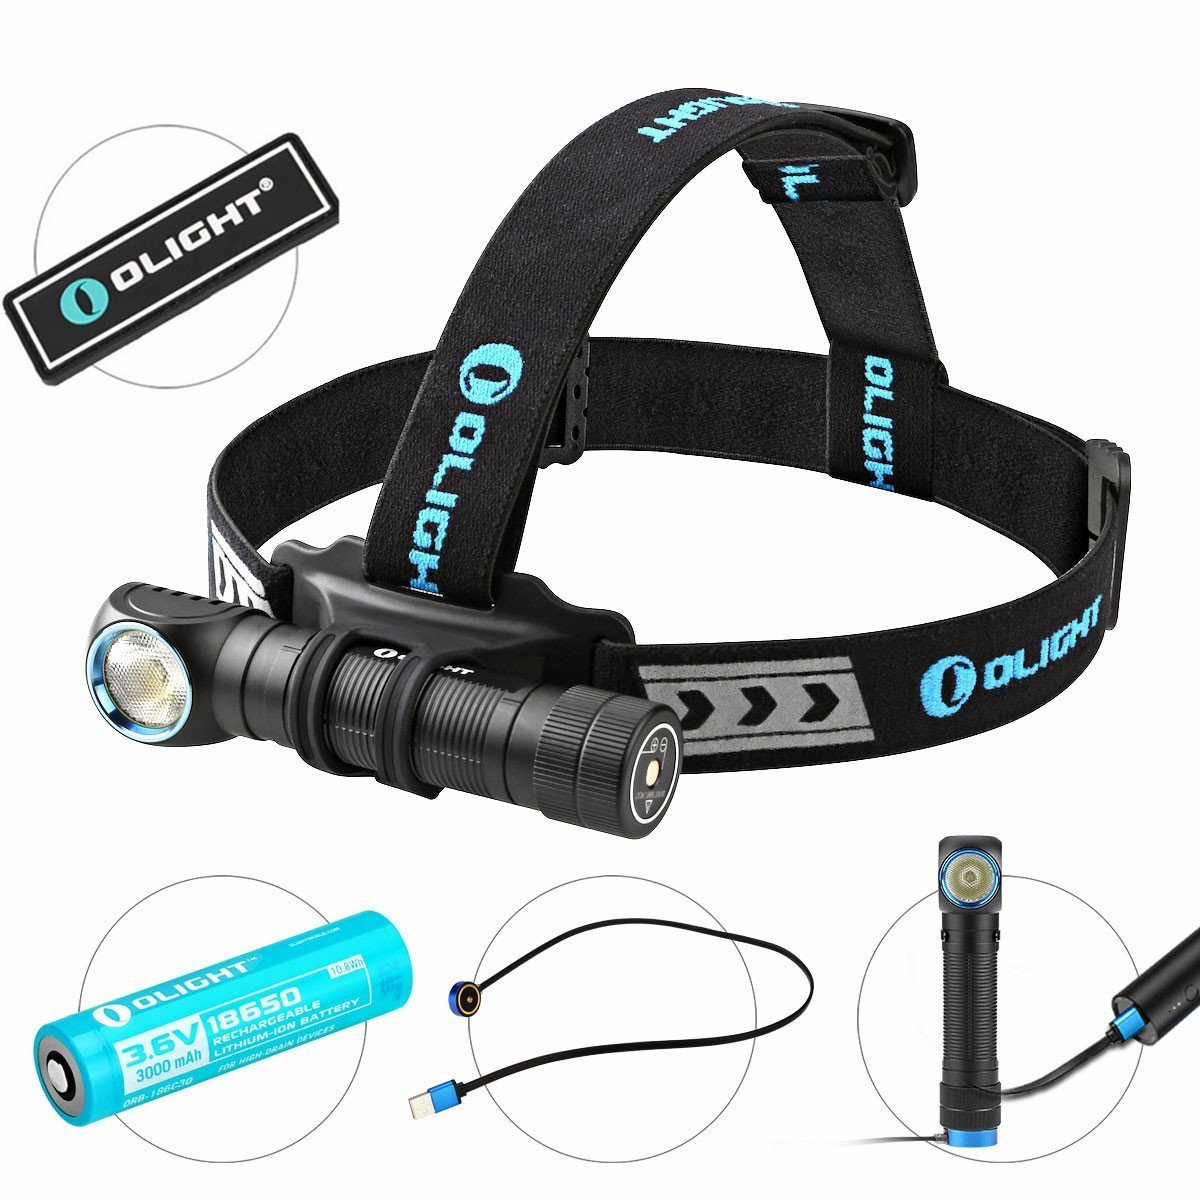 OLIGHT Bundle H2R Cree LED Up to 2300 lumens Rechargeable Headlamp Flashlight Customized Battery - Magnetic USB Charging Cable- Headband - Clip and Mount Patch (Neutral White)